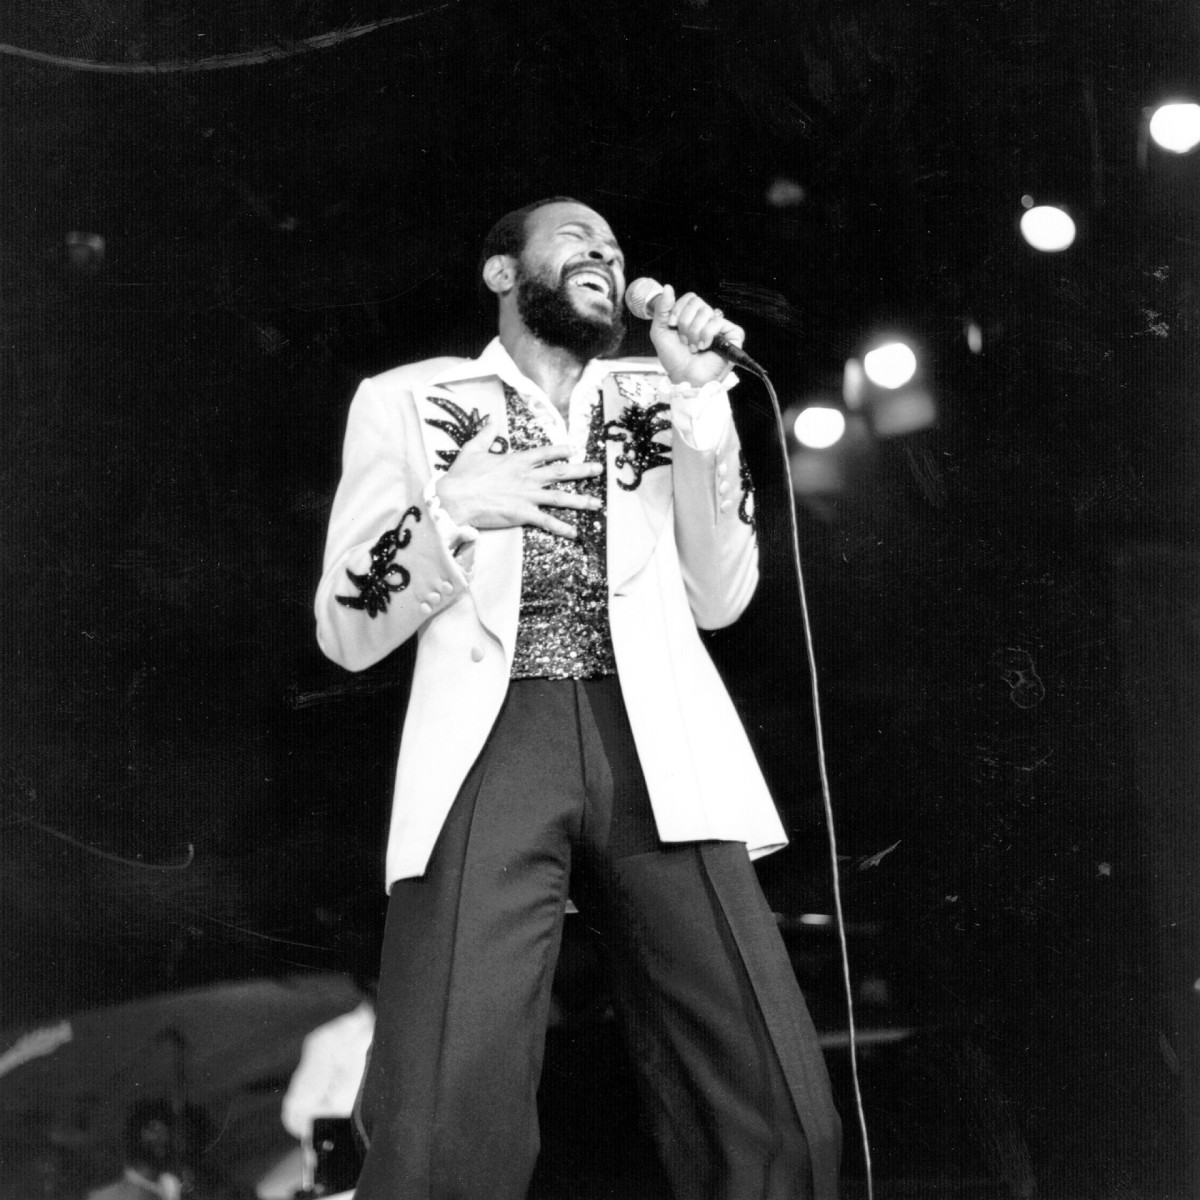 Marvin Gaye - What's Goin On